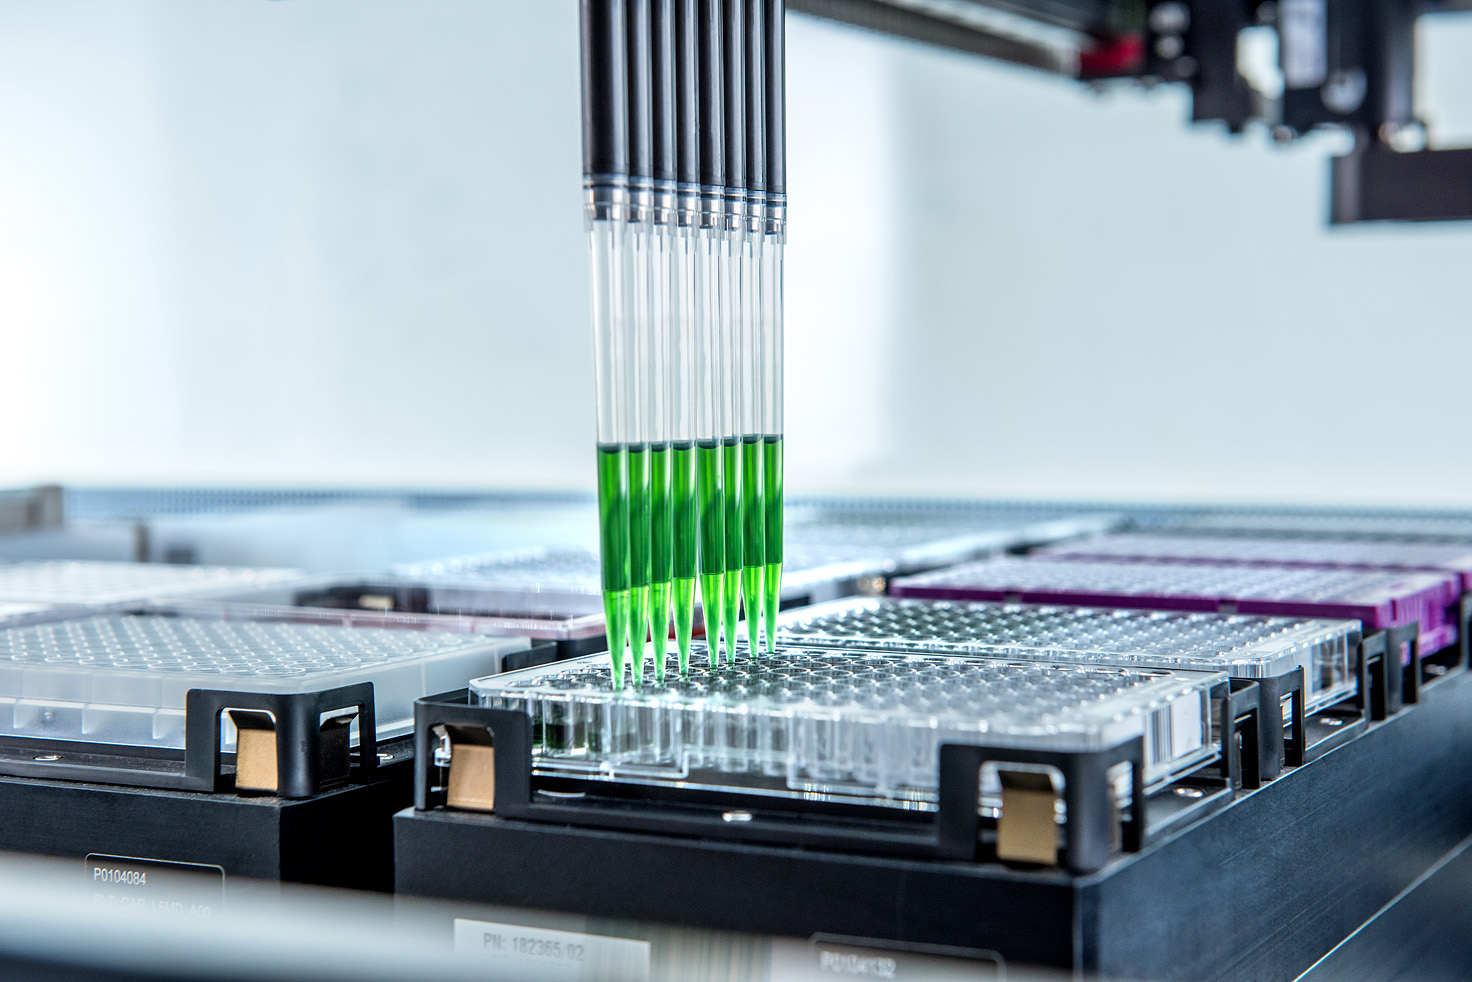 The top performance for laboratory automation